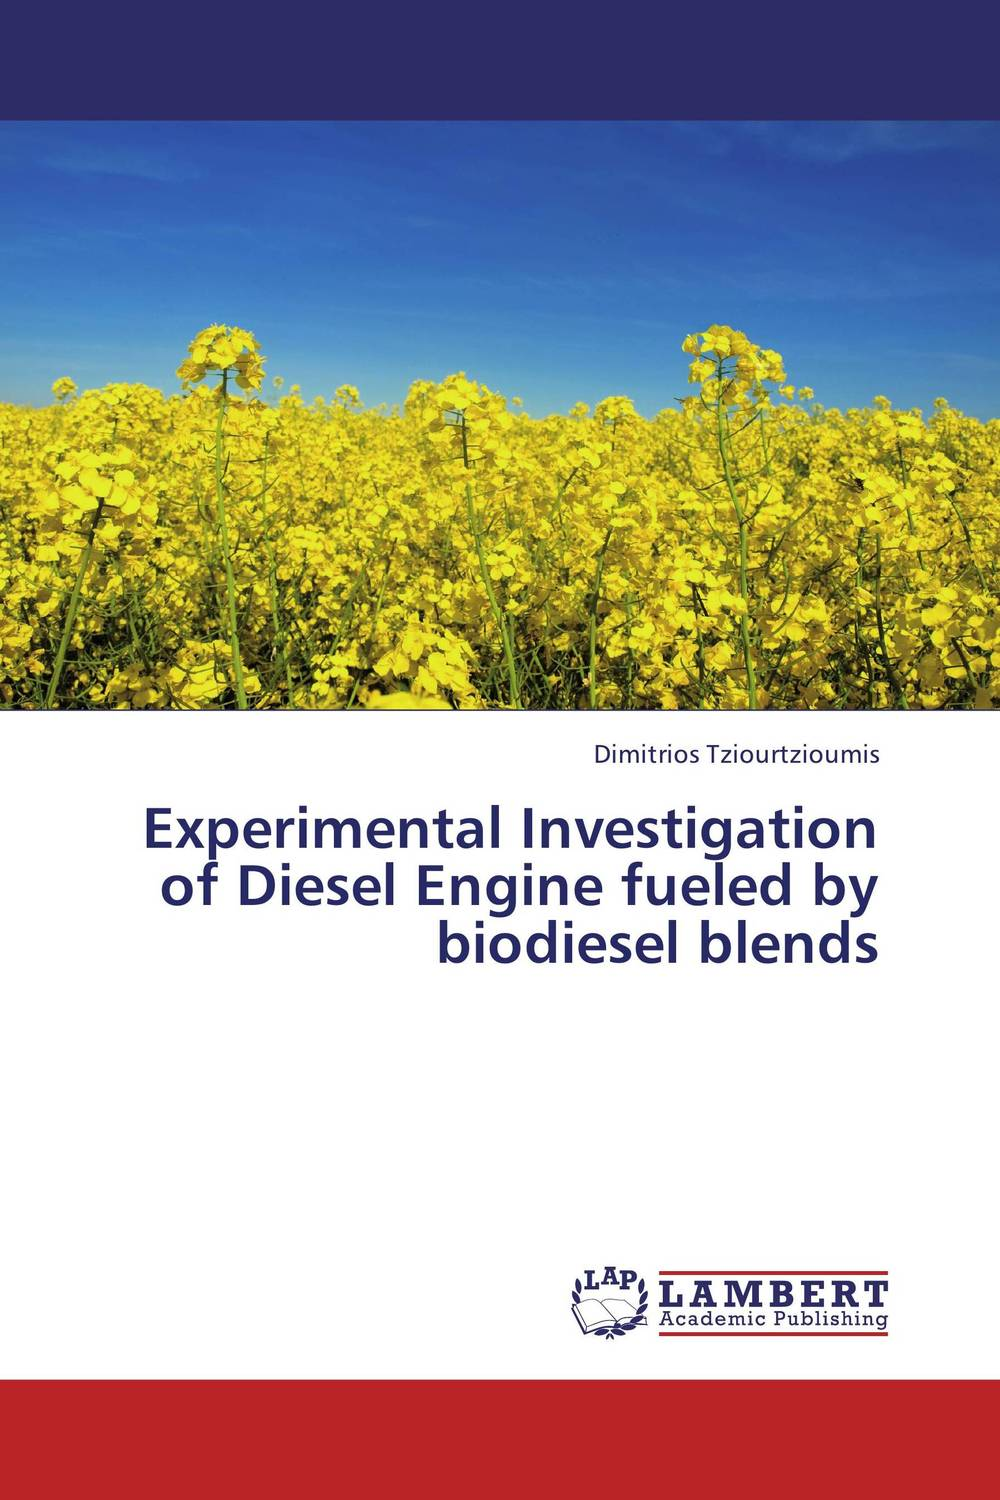 Experimental Investigation of Diesel Engine fueled by biodiesel blends rohit r limbachiya vaibhav j limbachiya and yashesh a darji experimental investigation of twin screw extruder machine